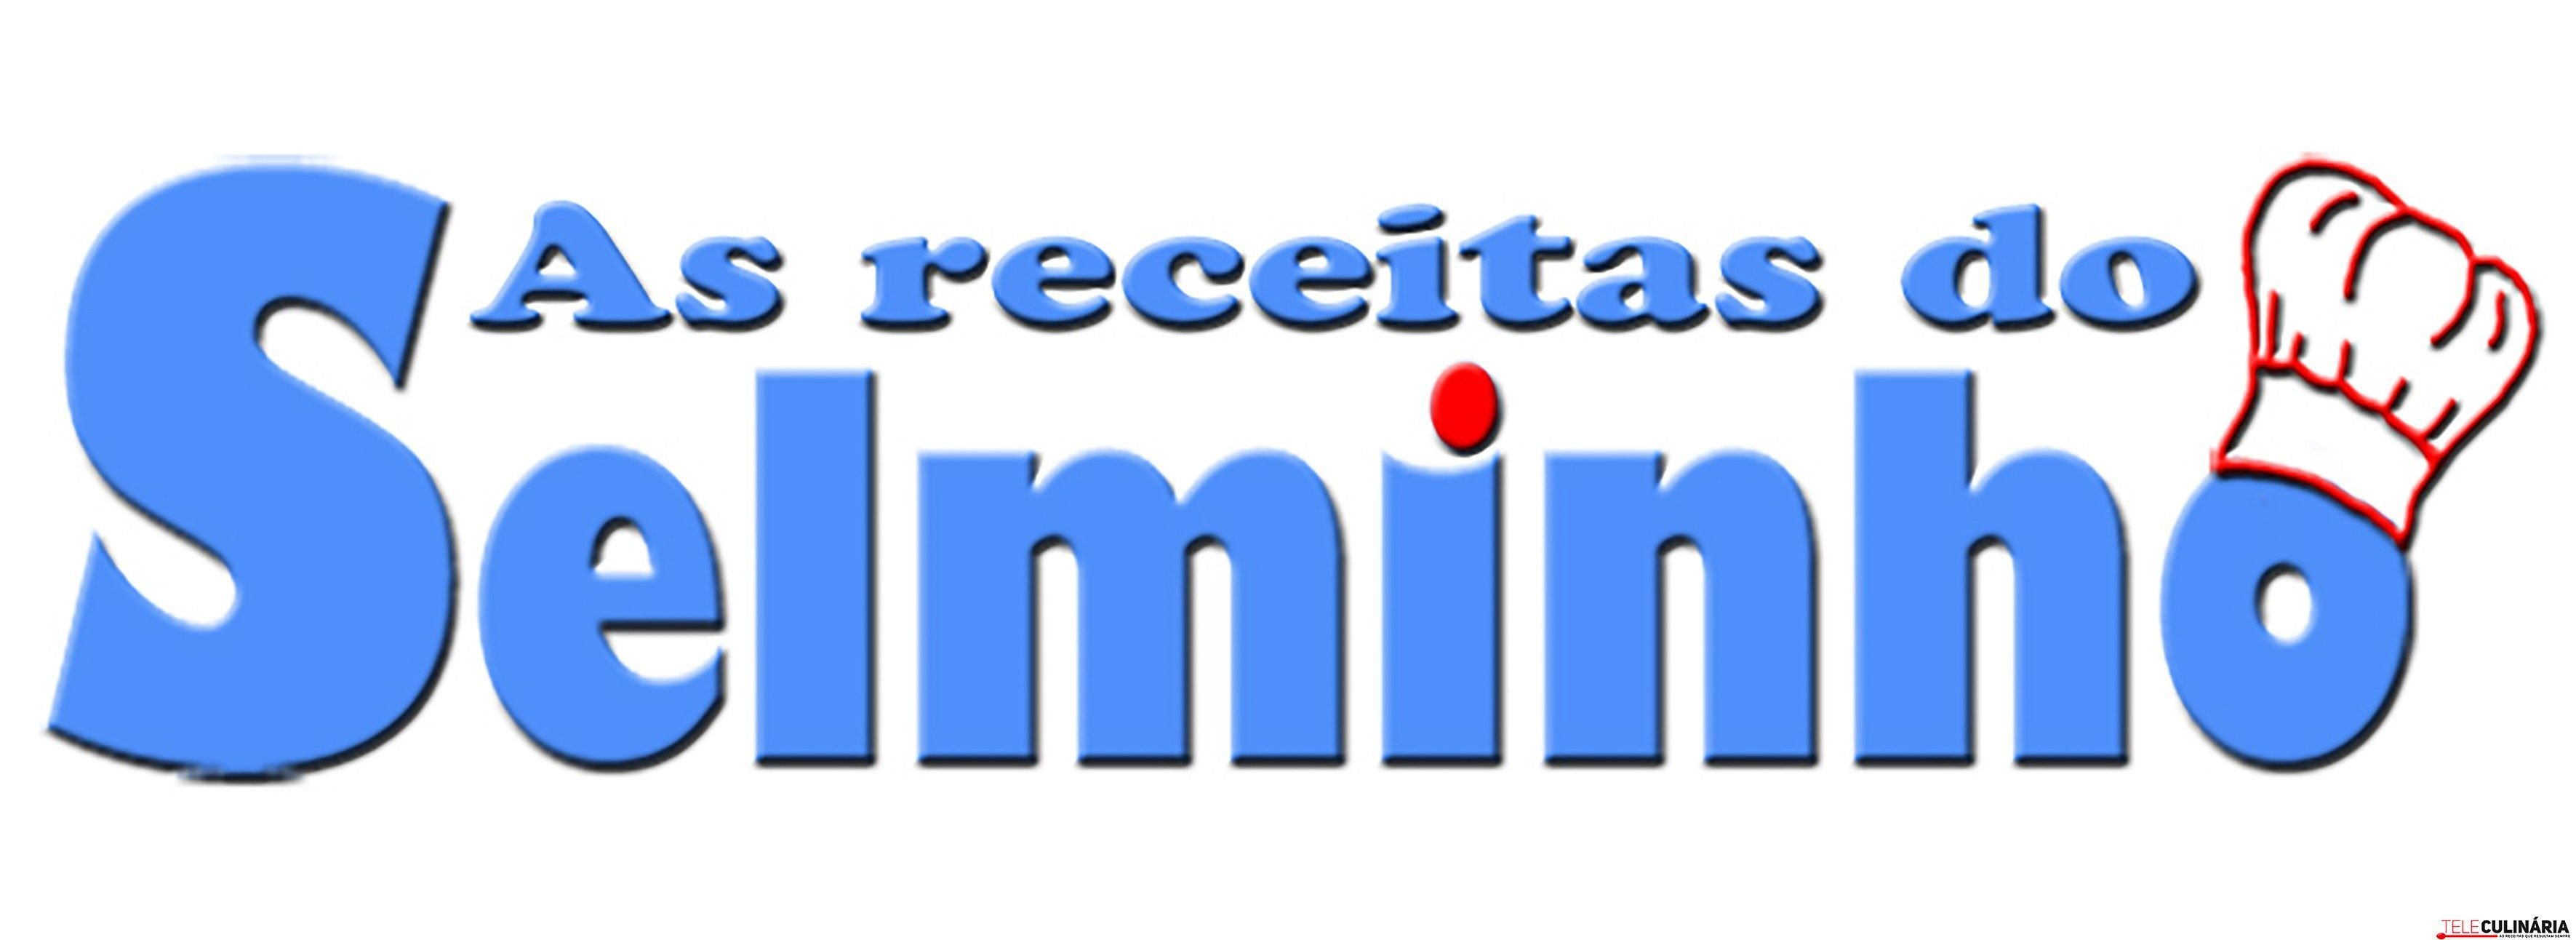 As_receitas_do_Selminho